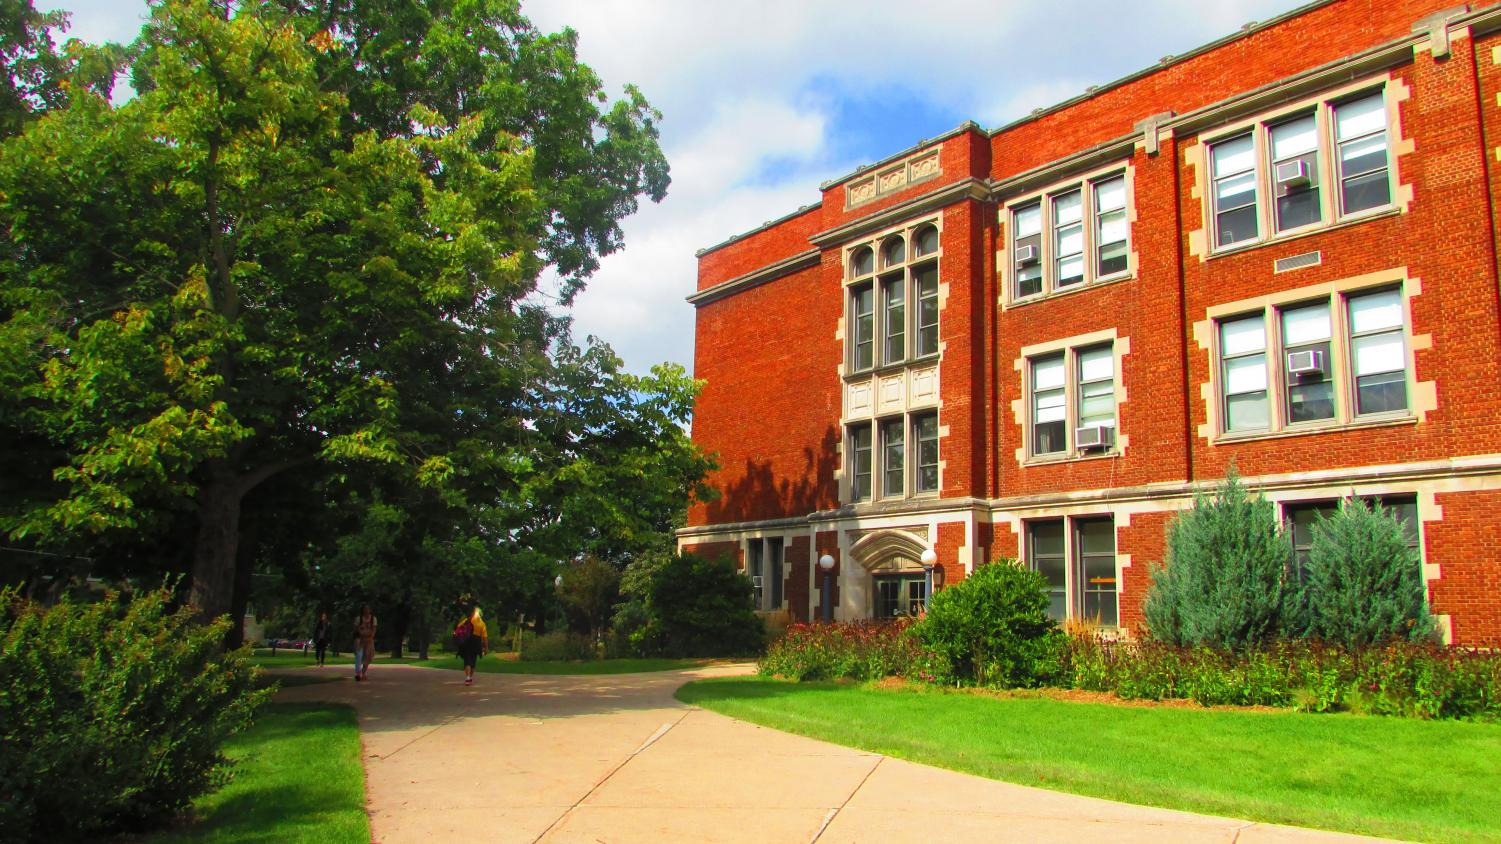 About 10,734 students are enrolled at the University of Wisconsin Oshkosh for the fall 2019 semester.